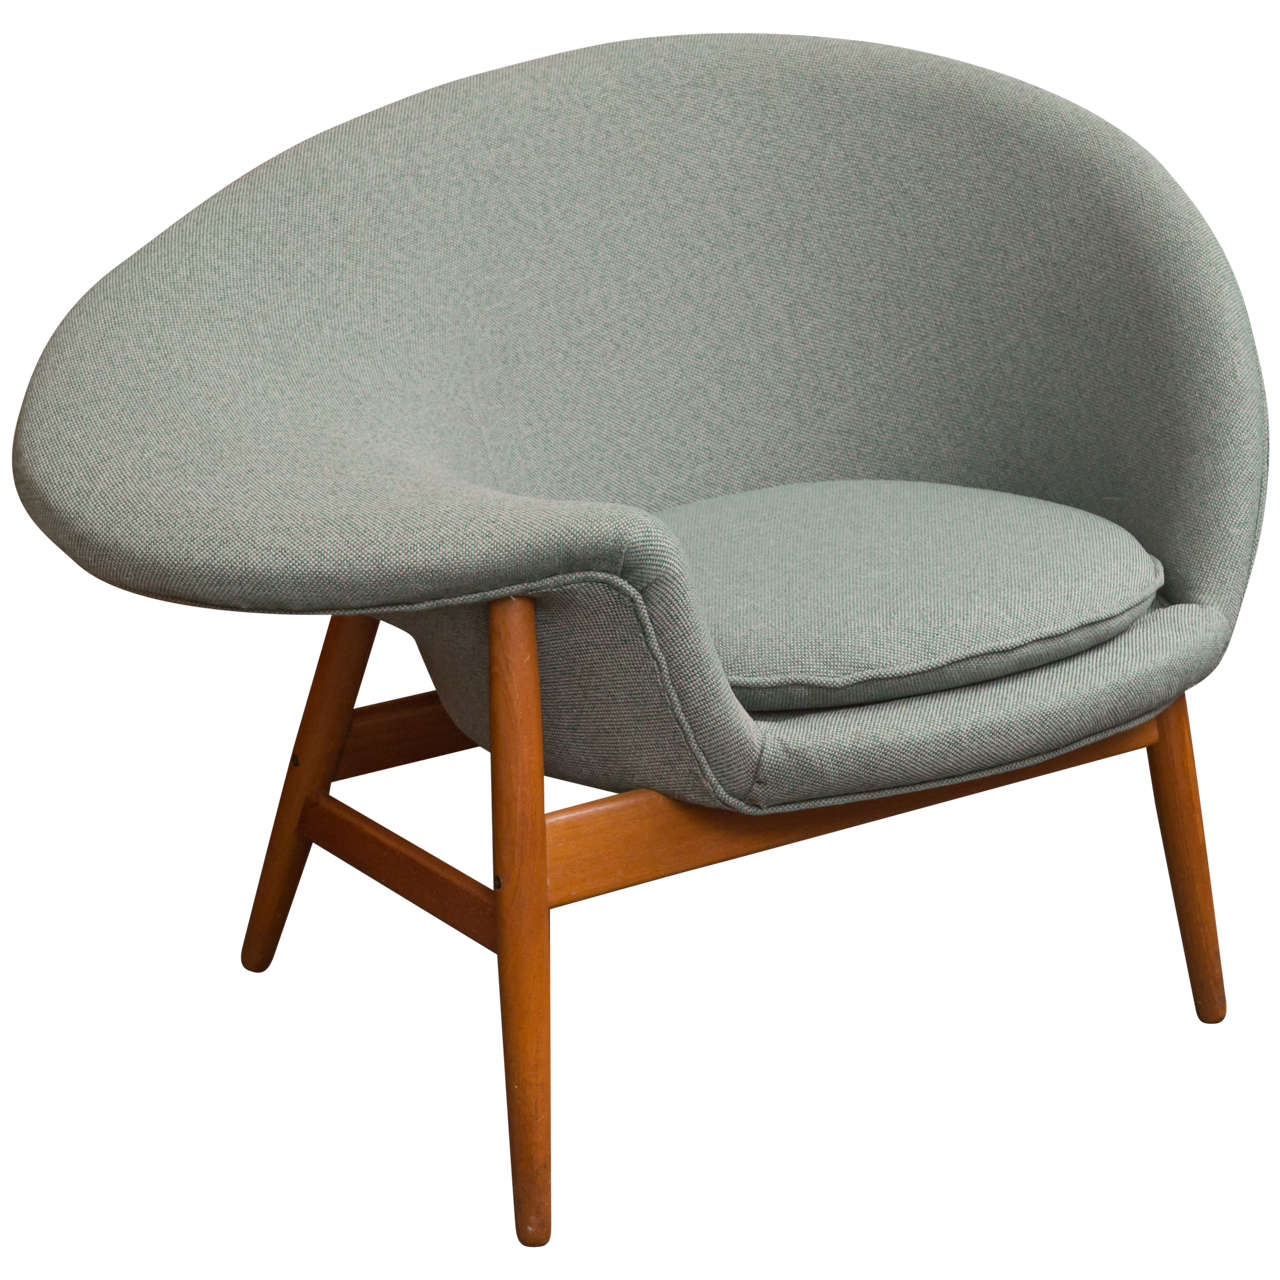 fried egg chair outdoor cushion covers australia hans olsen quotfried quot at 1stdibs